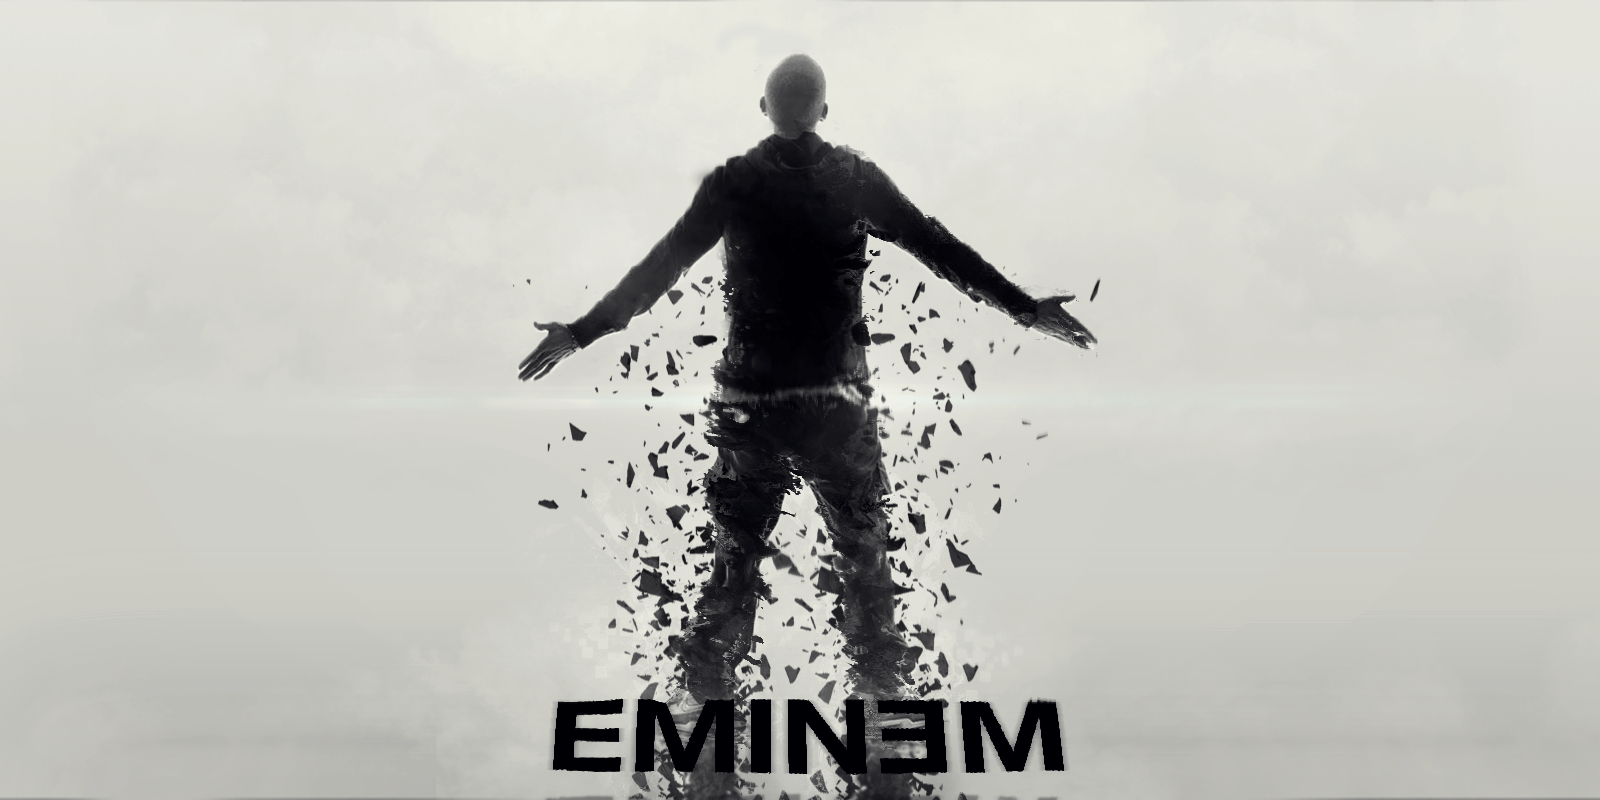 eminem cool wallpapers - photo #24